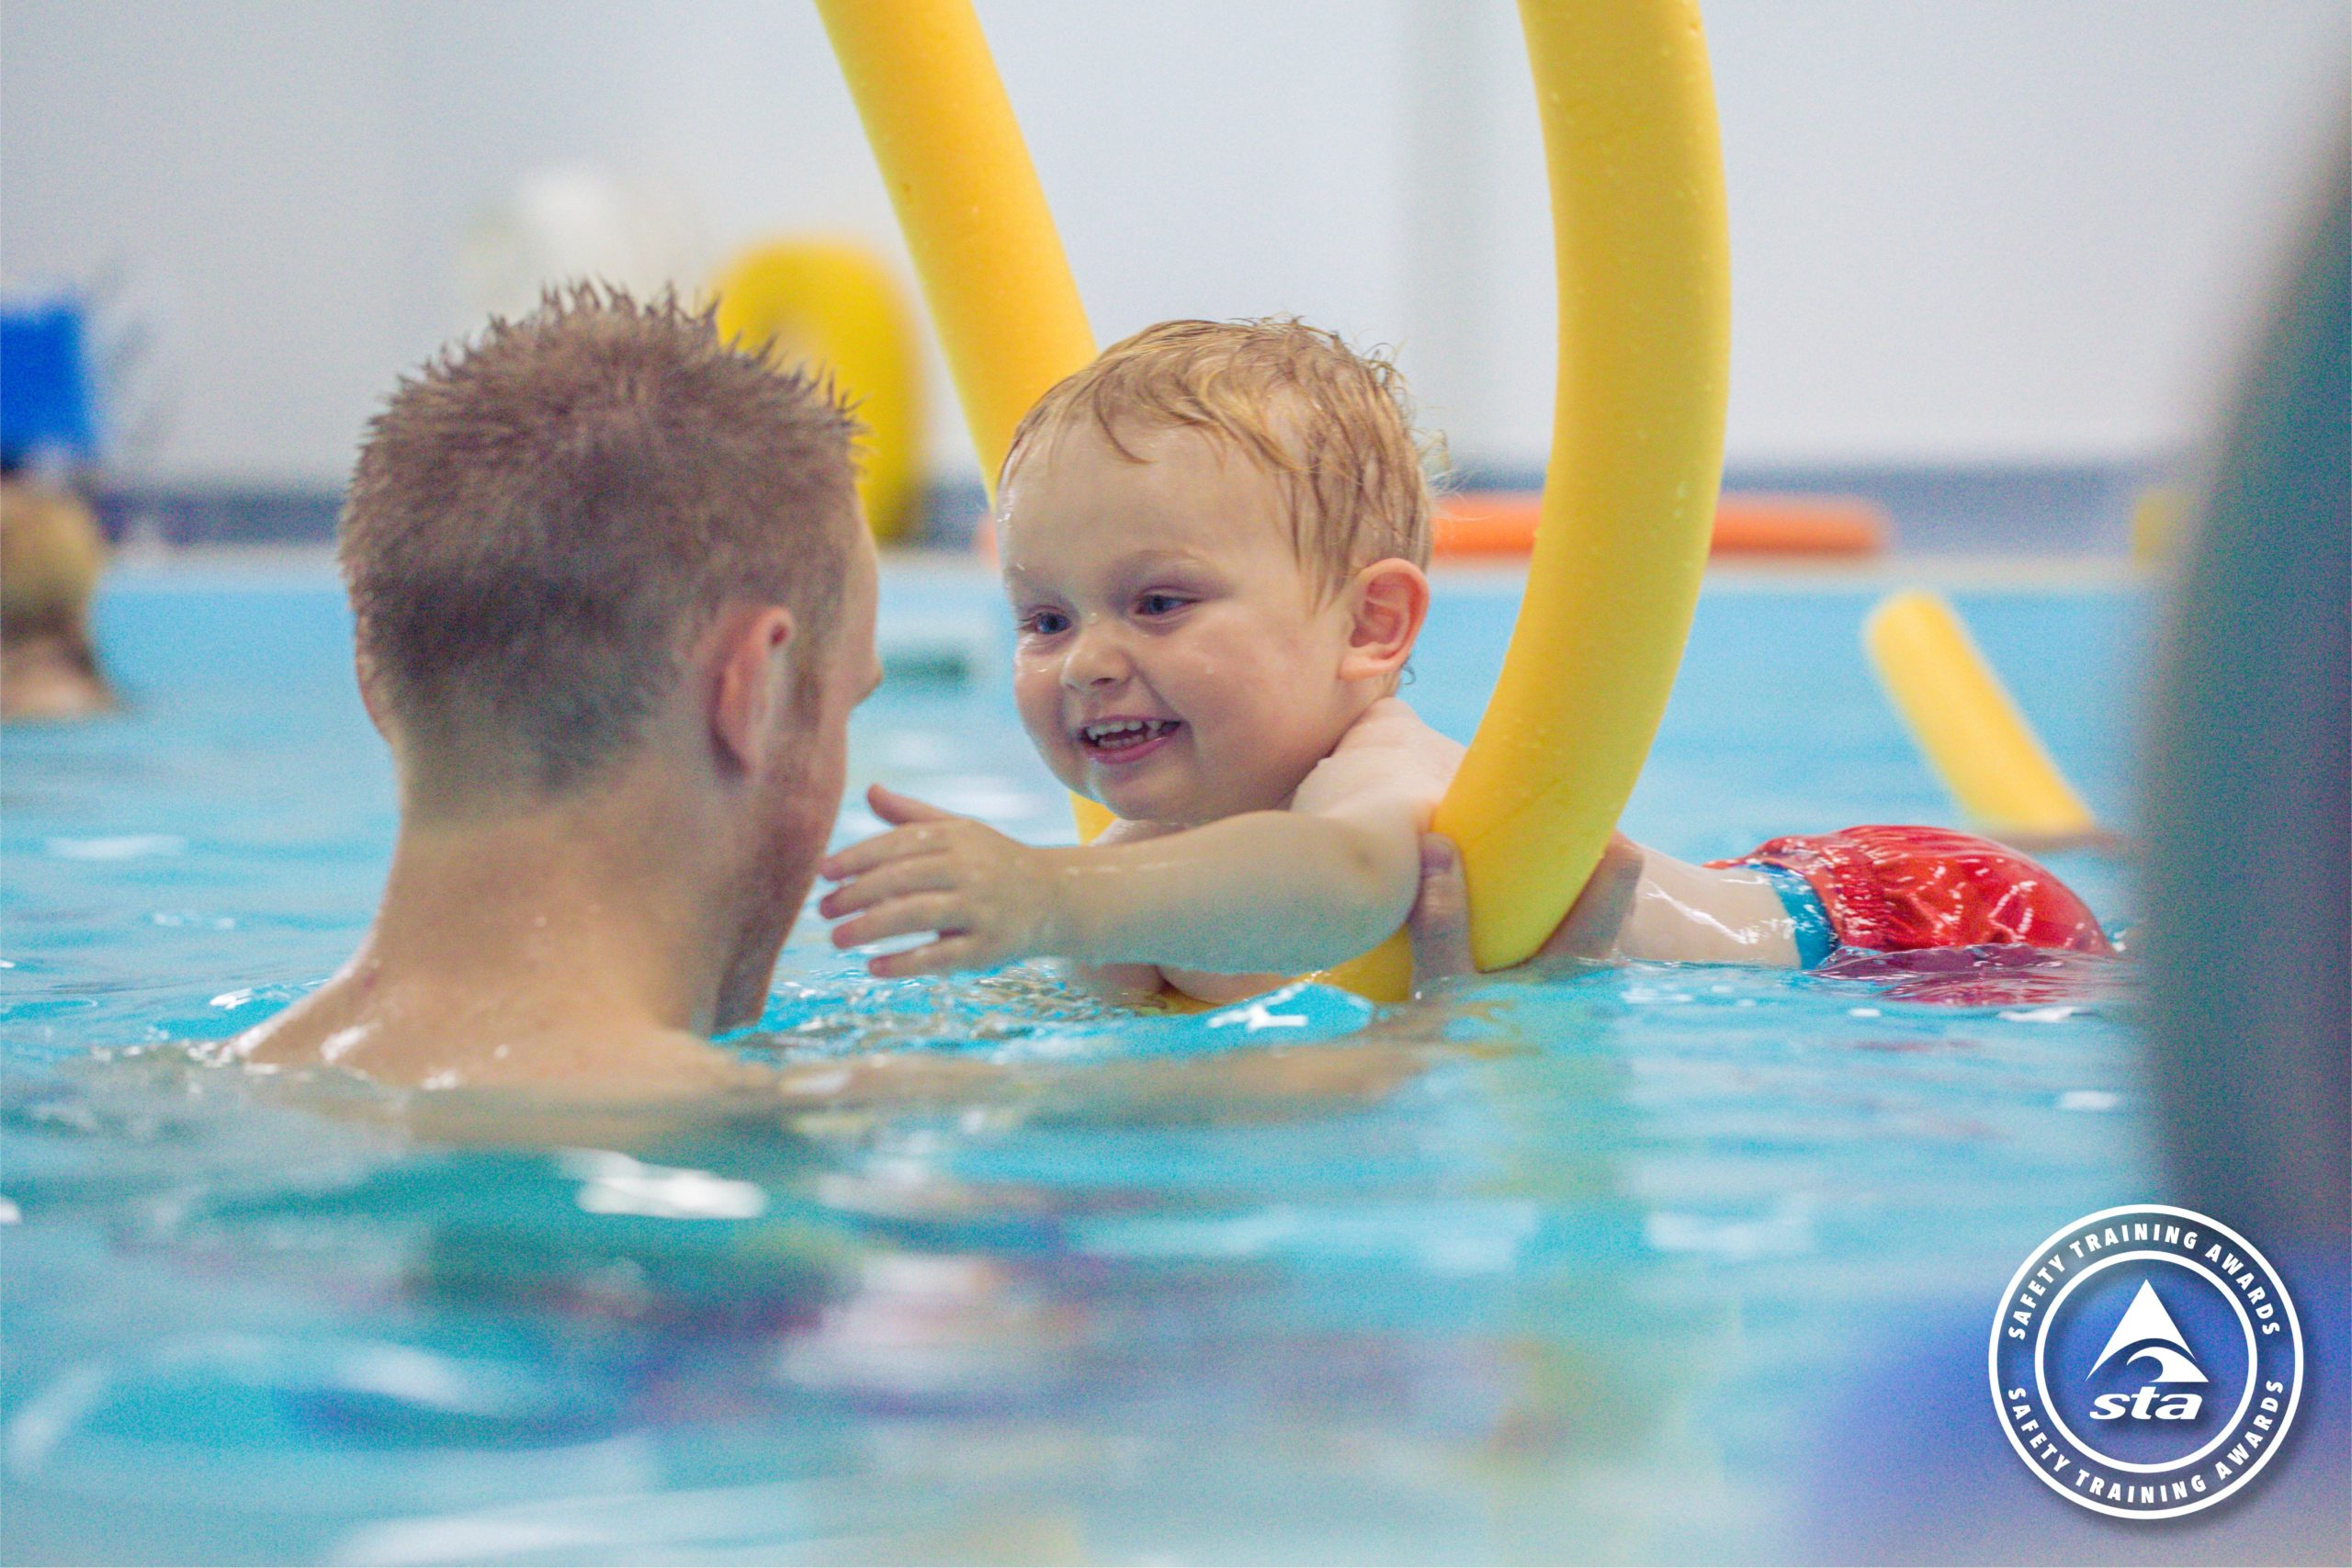 Keeping Your Child Safe In Water